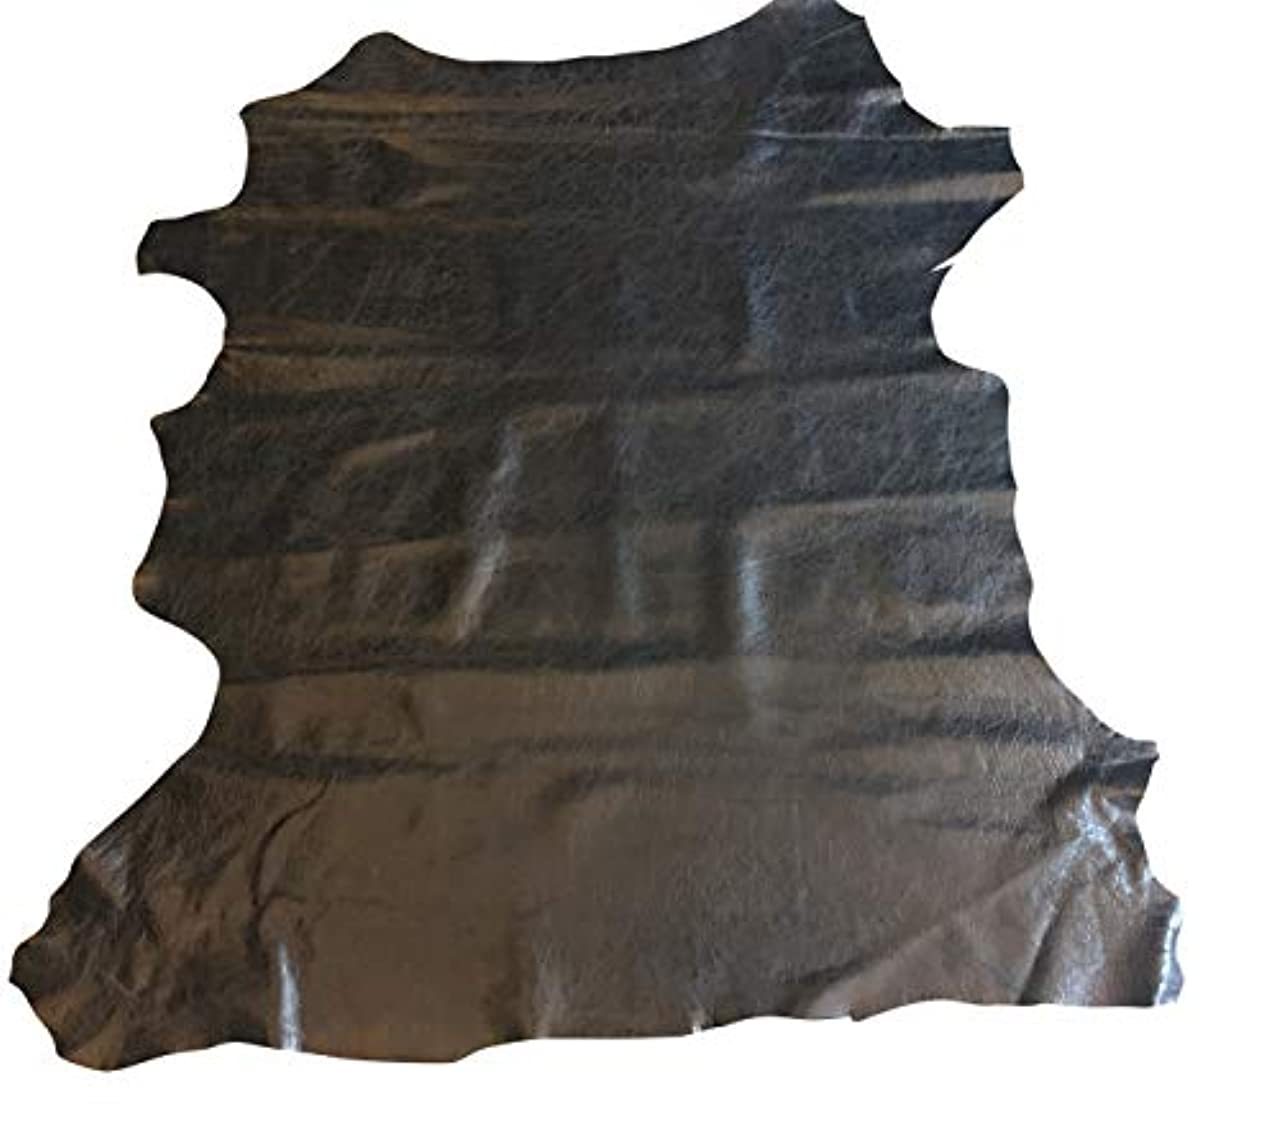 Black Leather Hide - Spanish Full Skin - Rustic Finish - 2 oz avg Thickness - Soft Upholstery Fabric - Genuine Thin Lambskin - DIY Supply - Craft Projects - Home Decor Material (6 sq ft, Black)